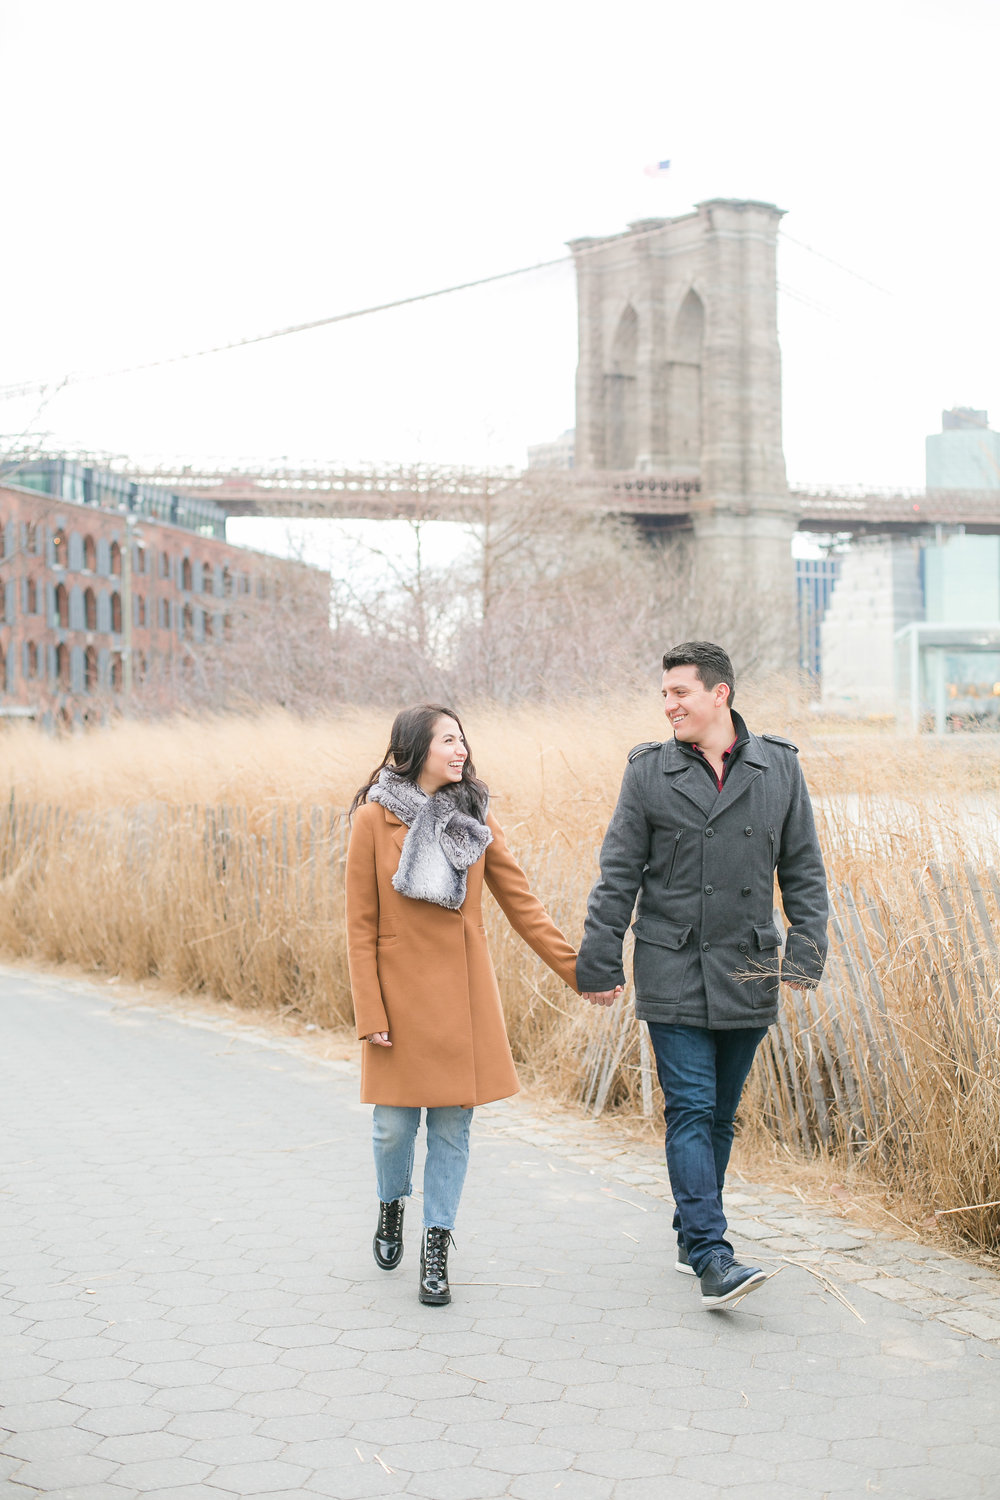 The experience of capturing a love story in New York was something worth freezing my fingers over since I hard time handling and setting my camera settings on with gloves.